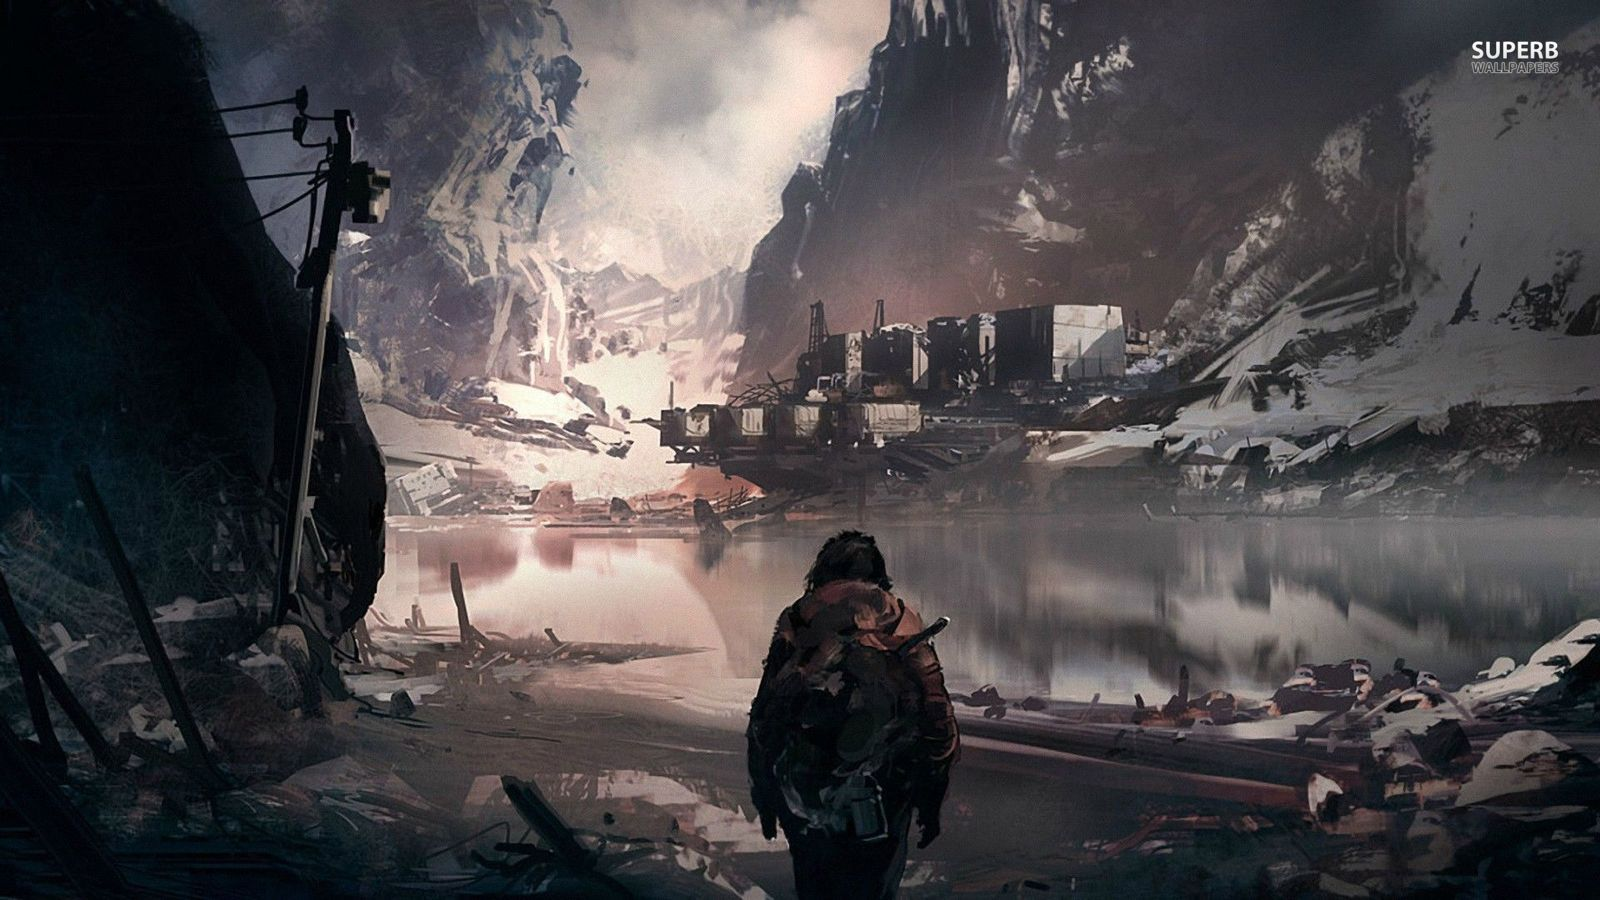 Fantasy Images Post Apocalypse HD Wallpaper And Background Photos